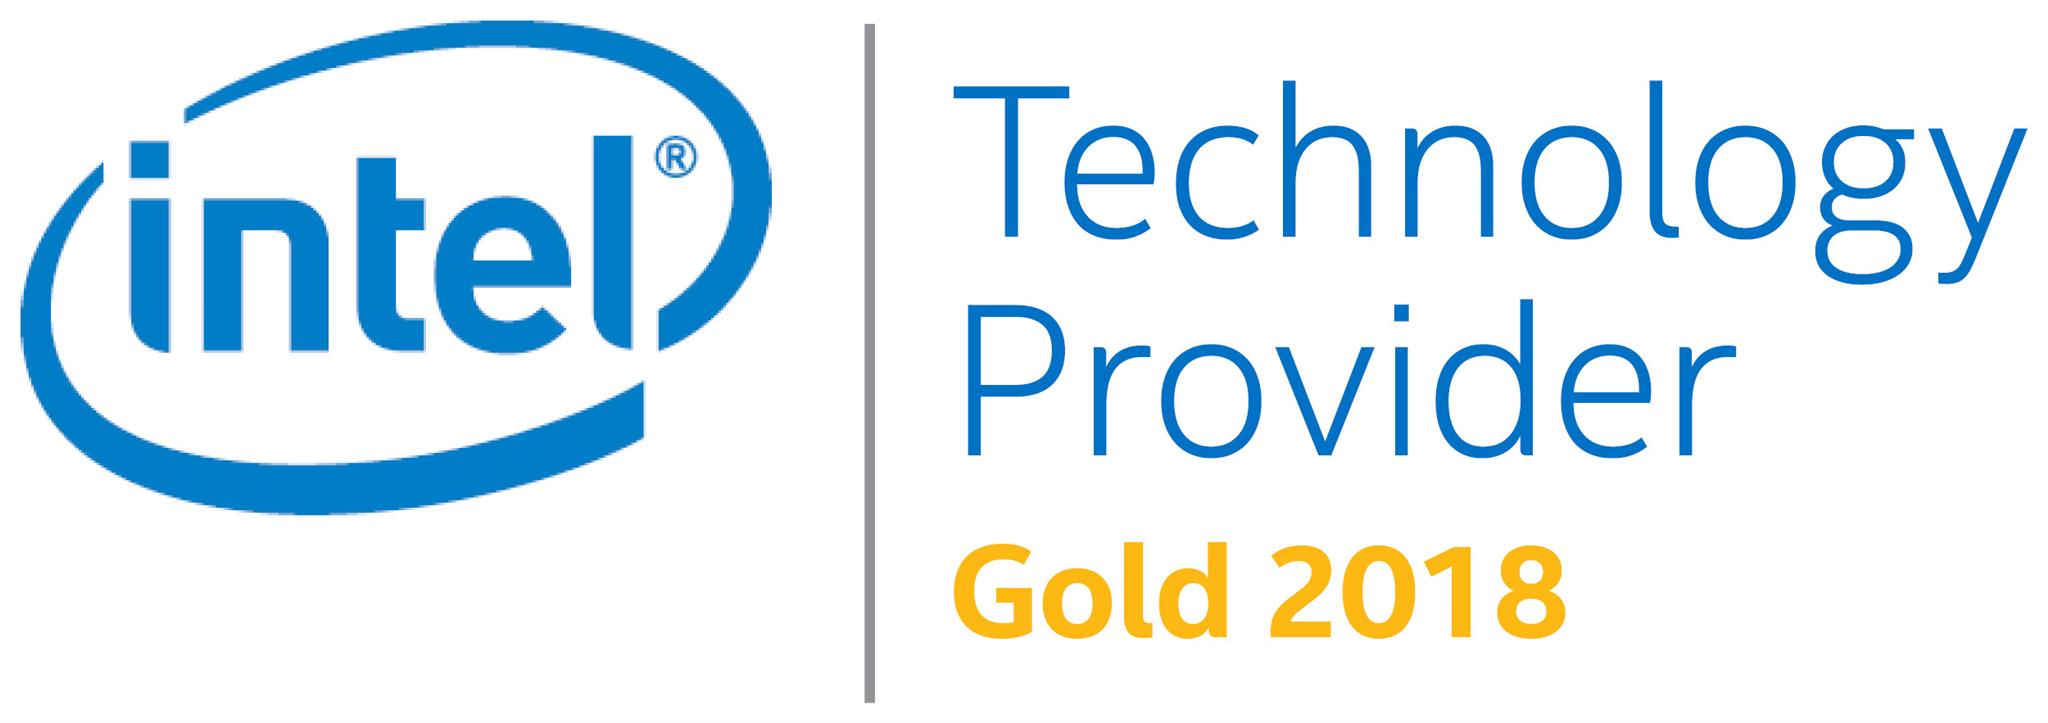 Intel Technology Provider - Gold 2018